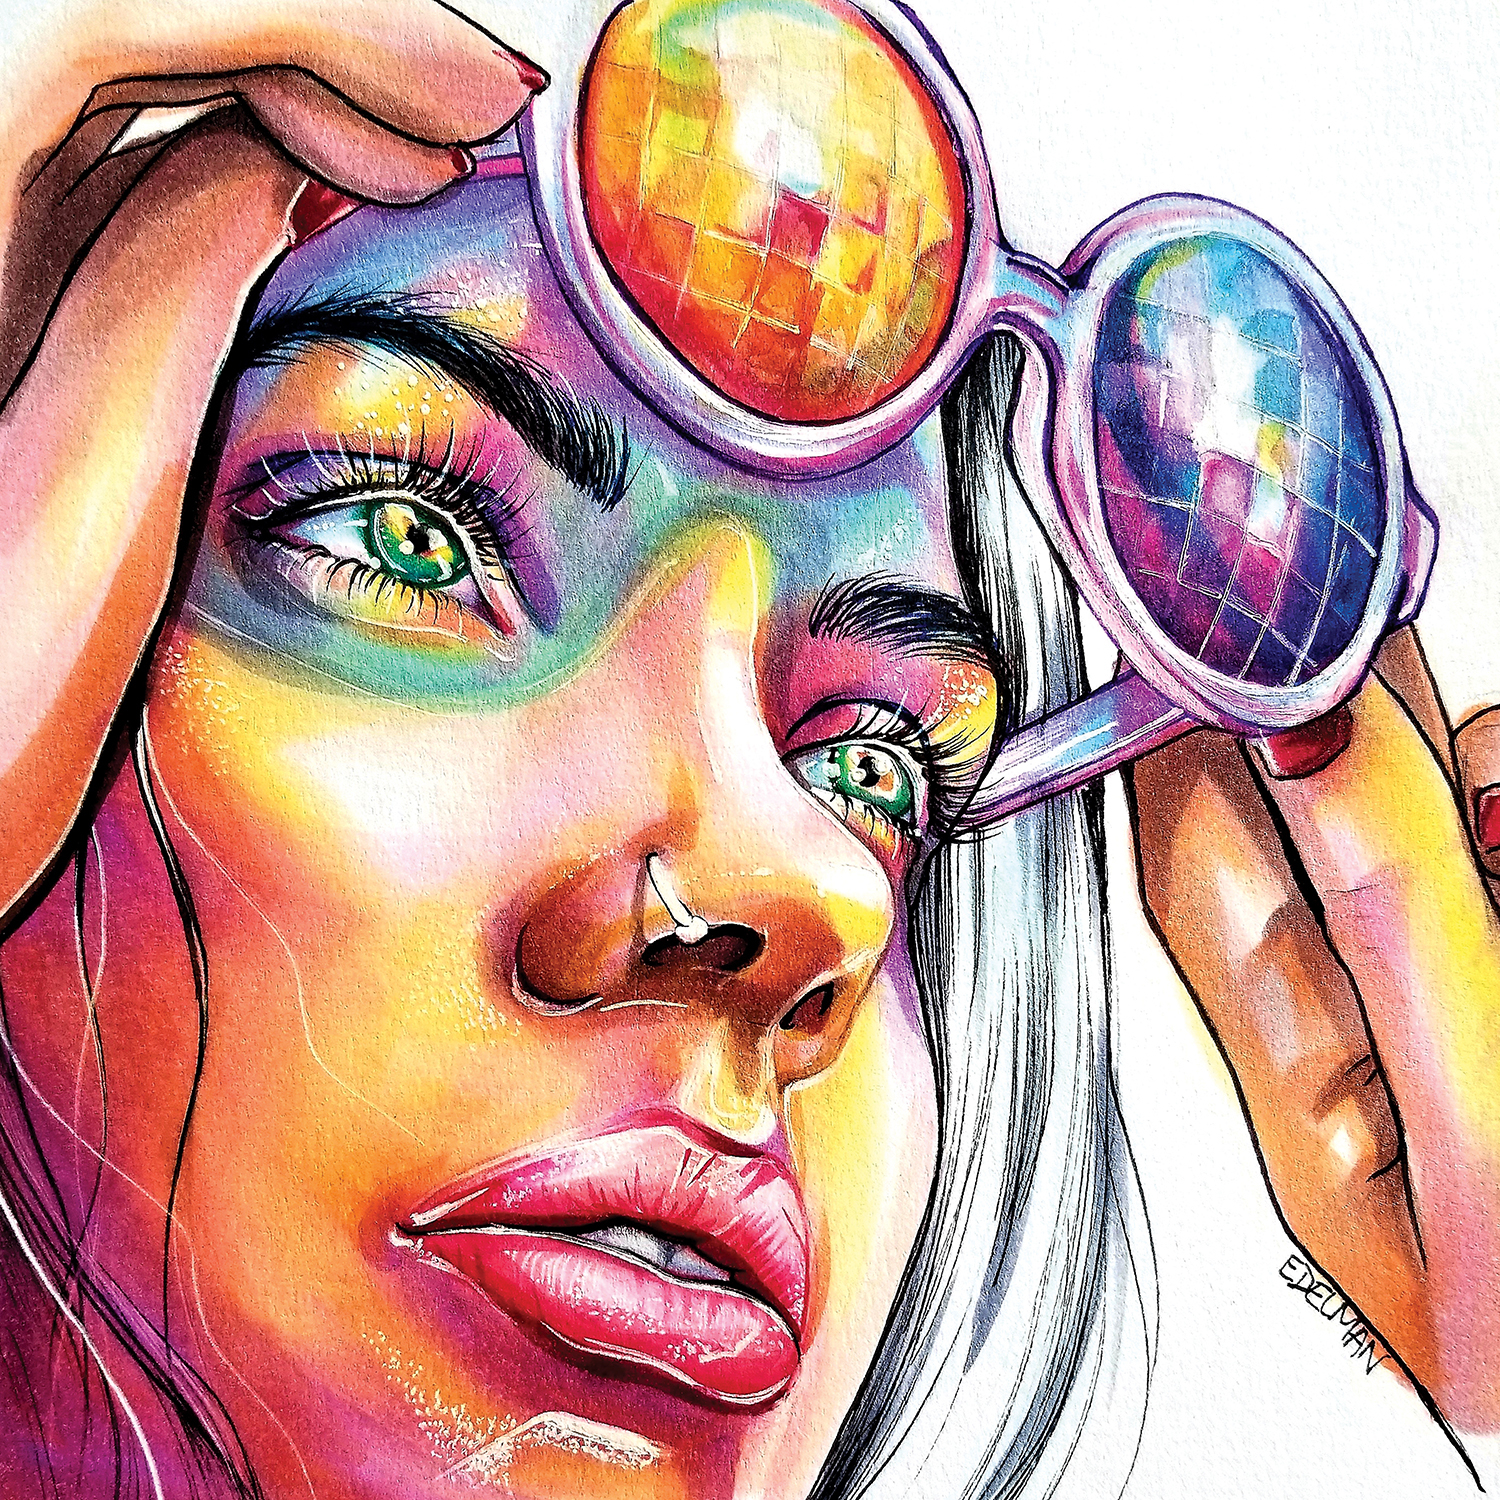 girl with nose ring lifting colorful sun glasses off eyes